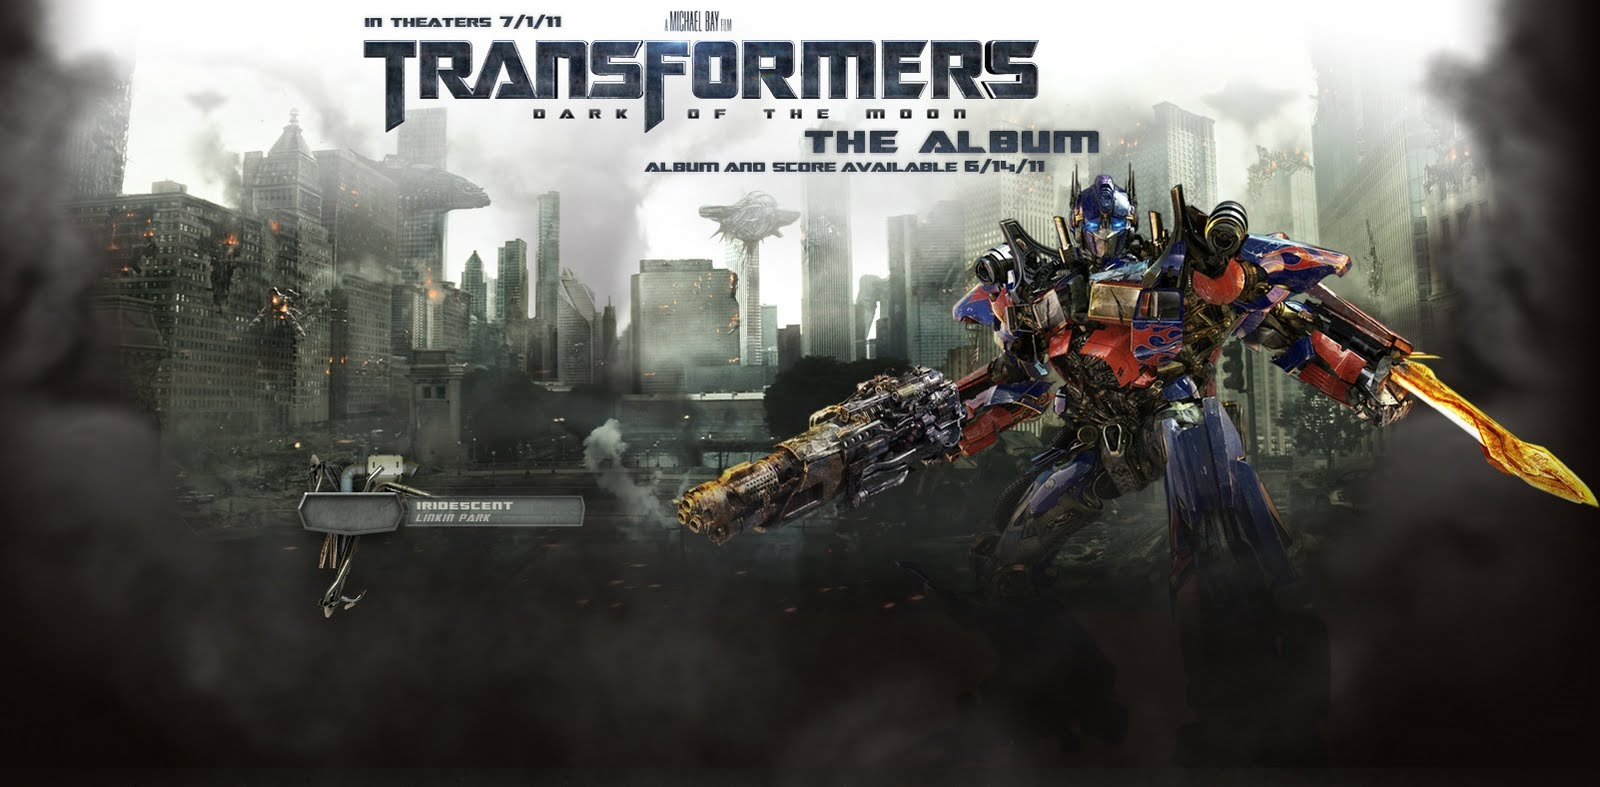 transformers 3 movie - minimalistic vs. over the top transformers 3